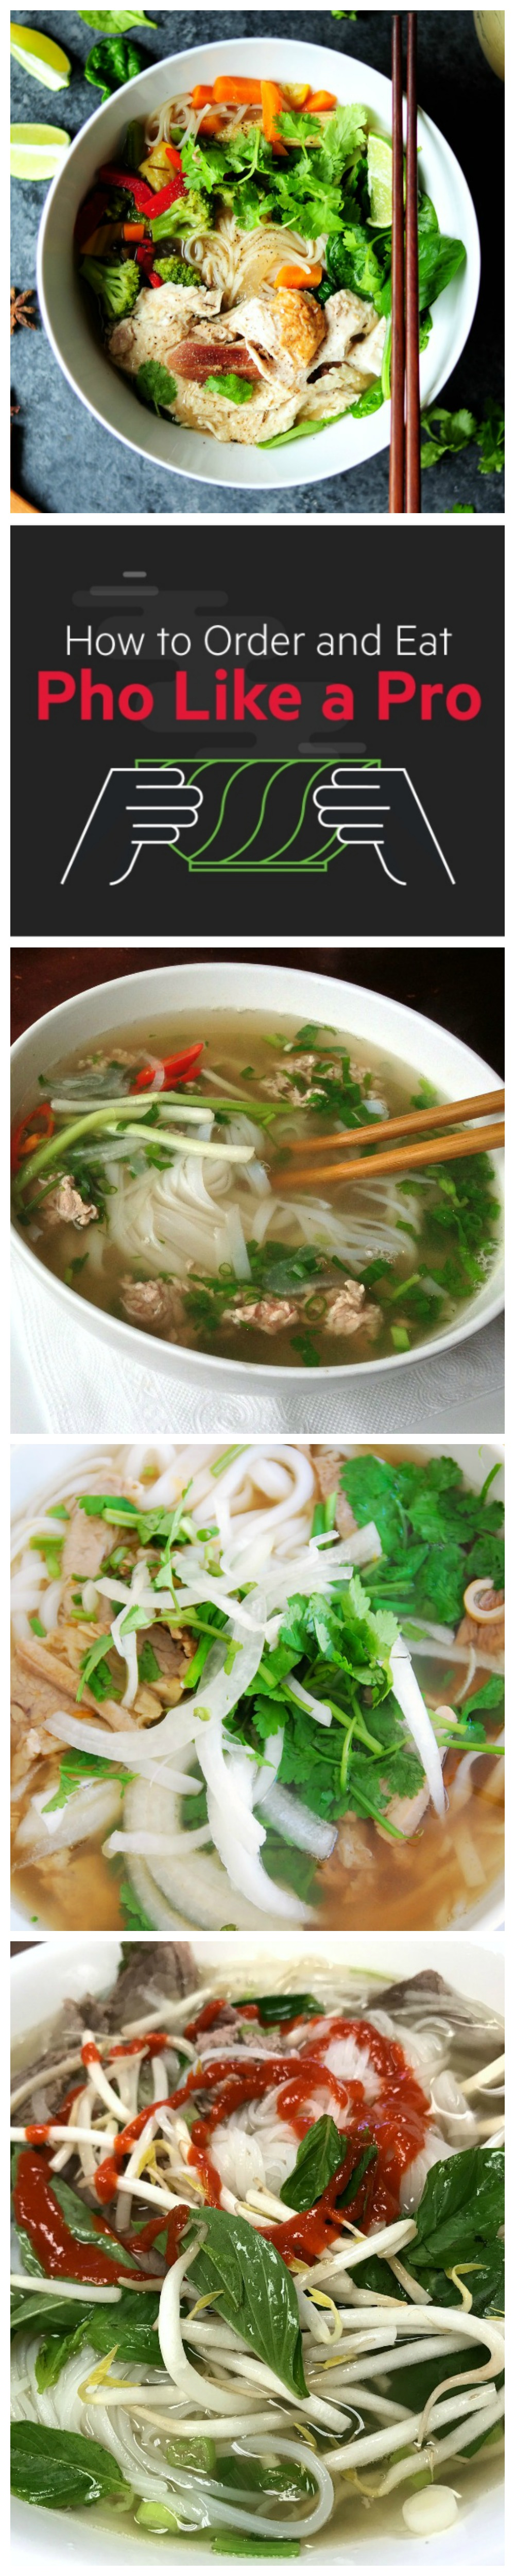 How to Eat Pho Like a Pro